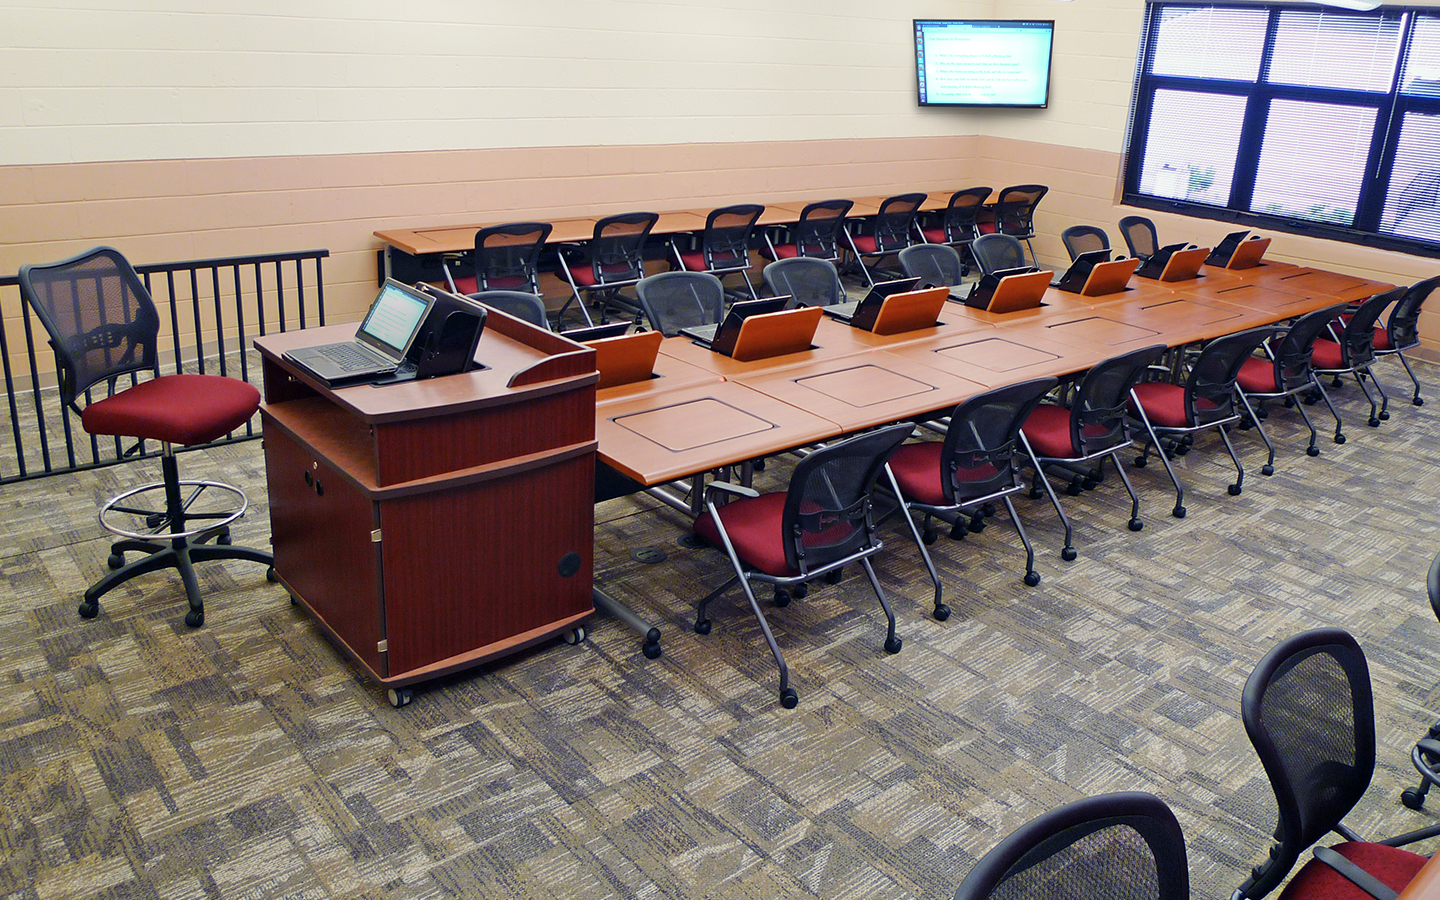 Enhance Your Classroom with Ergonomic Technology Desks from SMARTdesks Call 800-770-7042